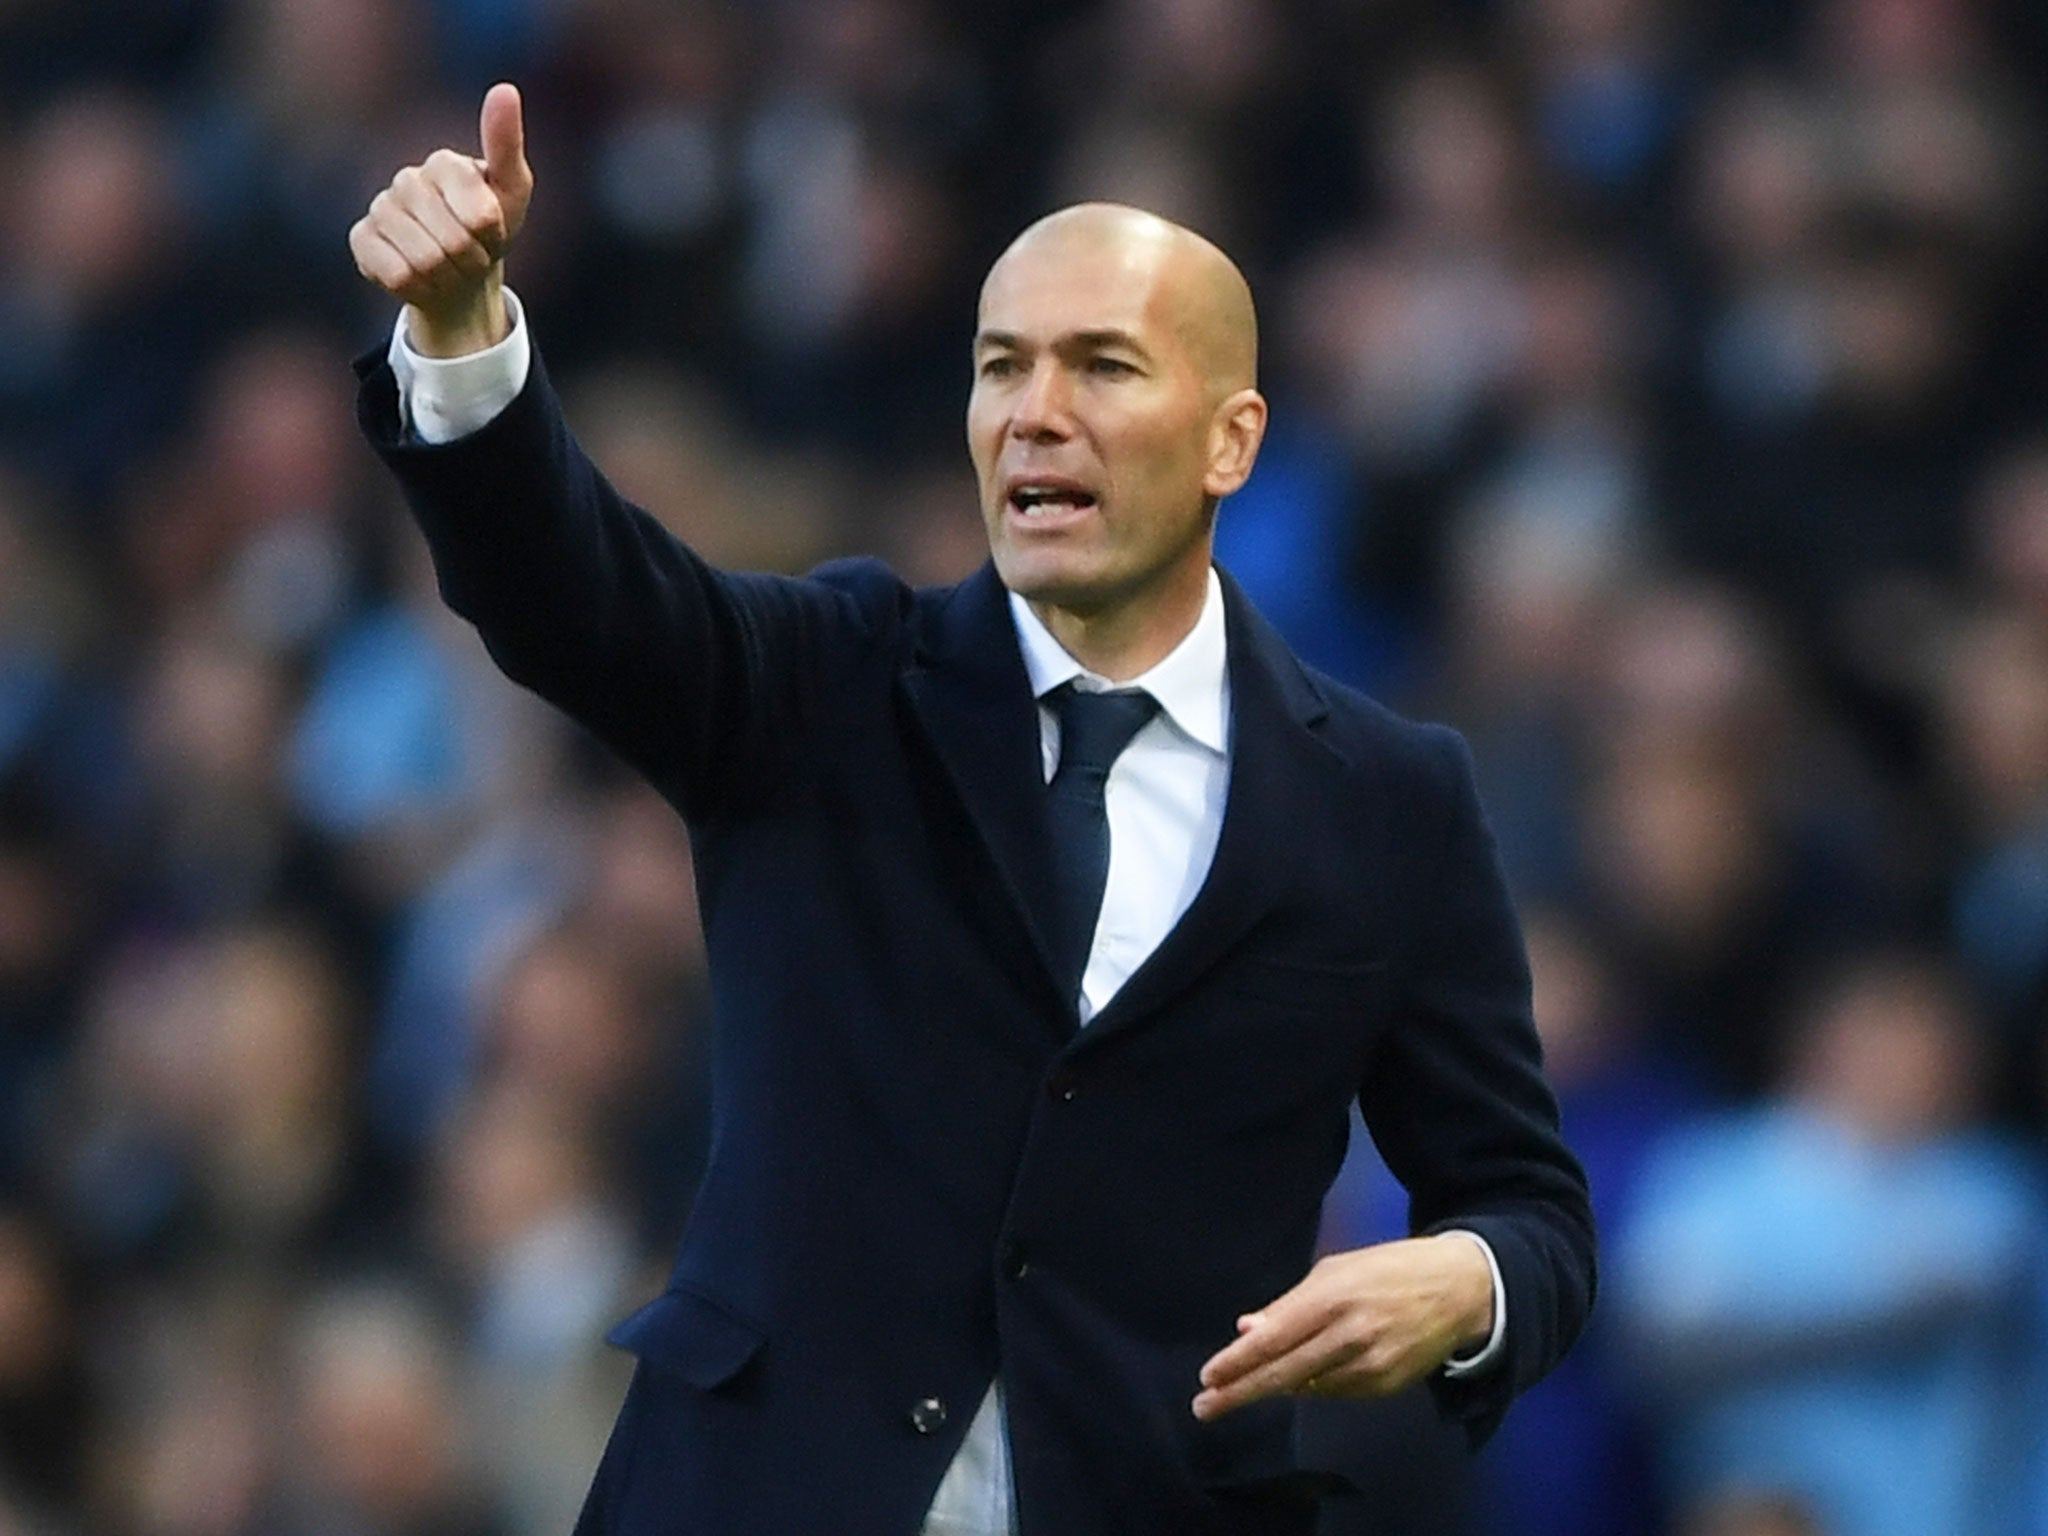 Zinedine Zidane Did the Real Madrid manager rip his trousers